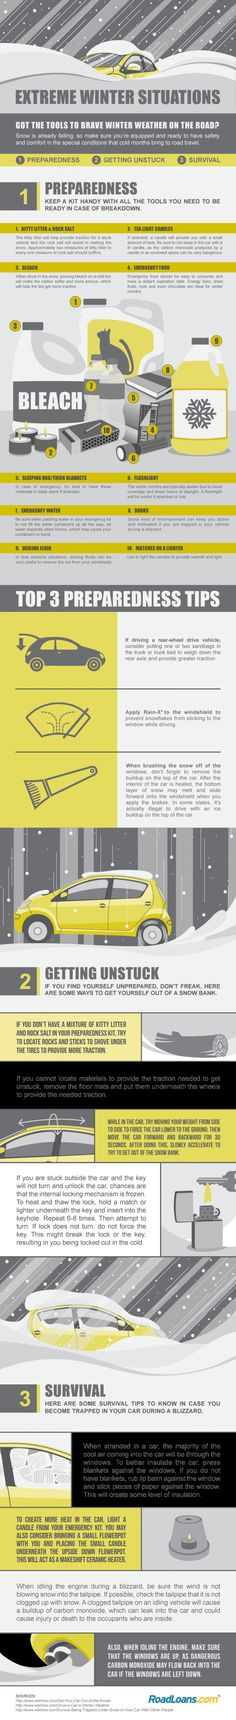 Extreme Winter Situations Infographic get the tools to brave winter weather on the road